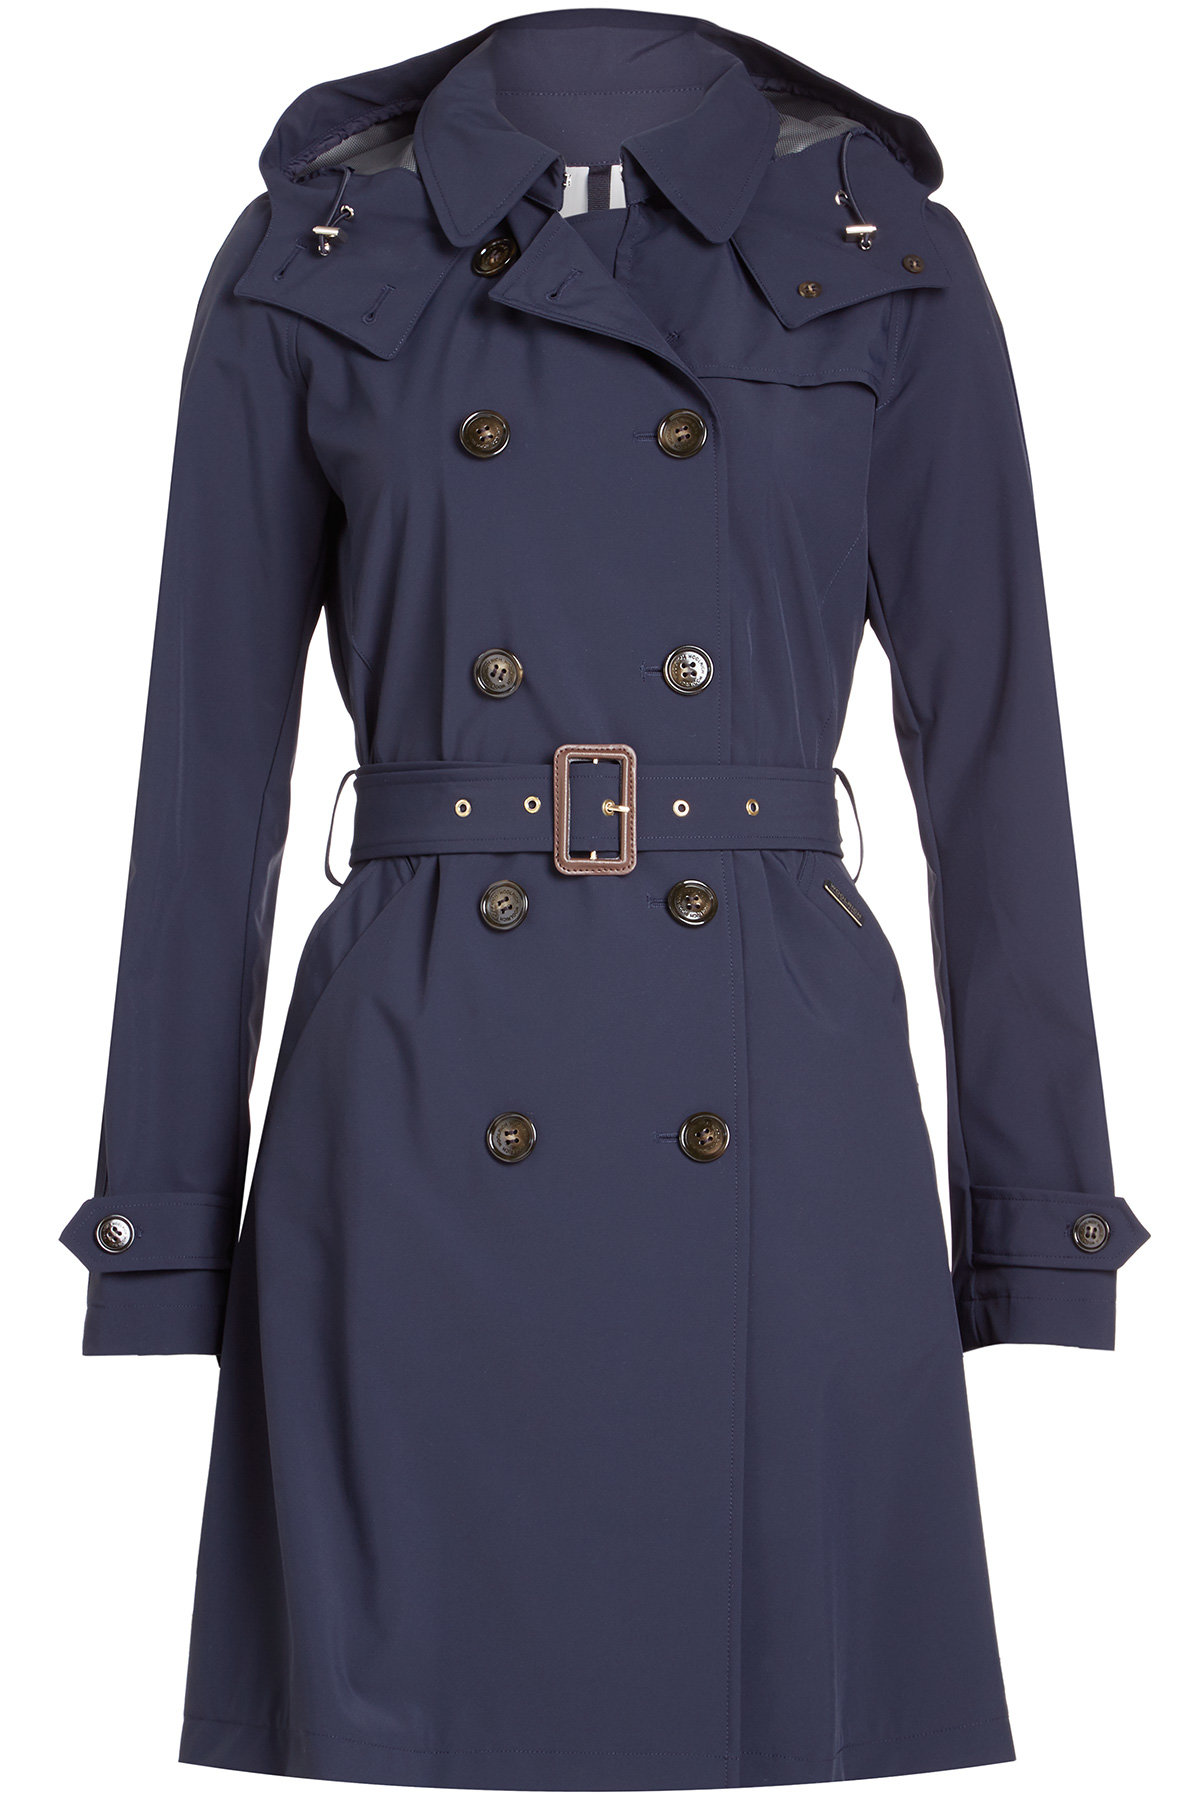 Coats: Free Shipping on orders over $45 at Stay warm with our great selection of Women's coats from dnxvvyut.ml Your Online Women's Outerwear Store! Get 5% in rewards with Club O!